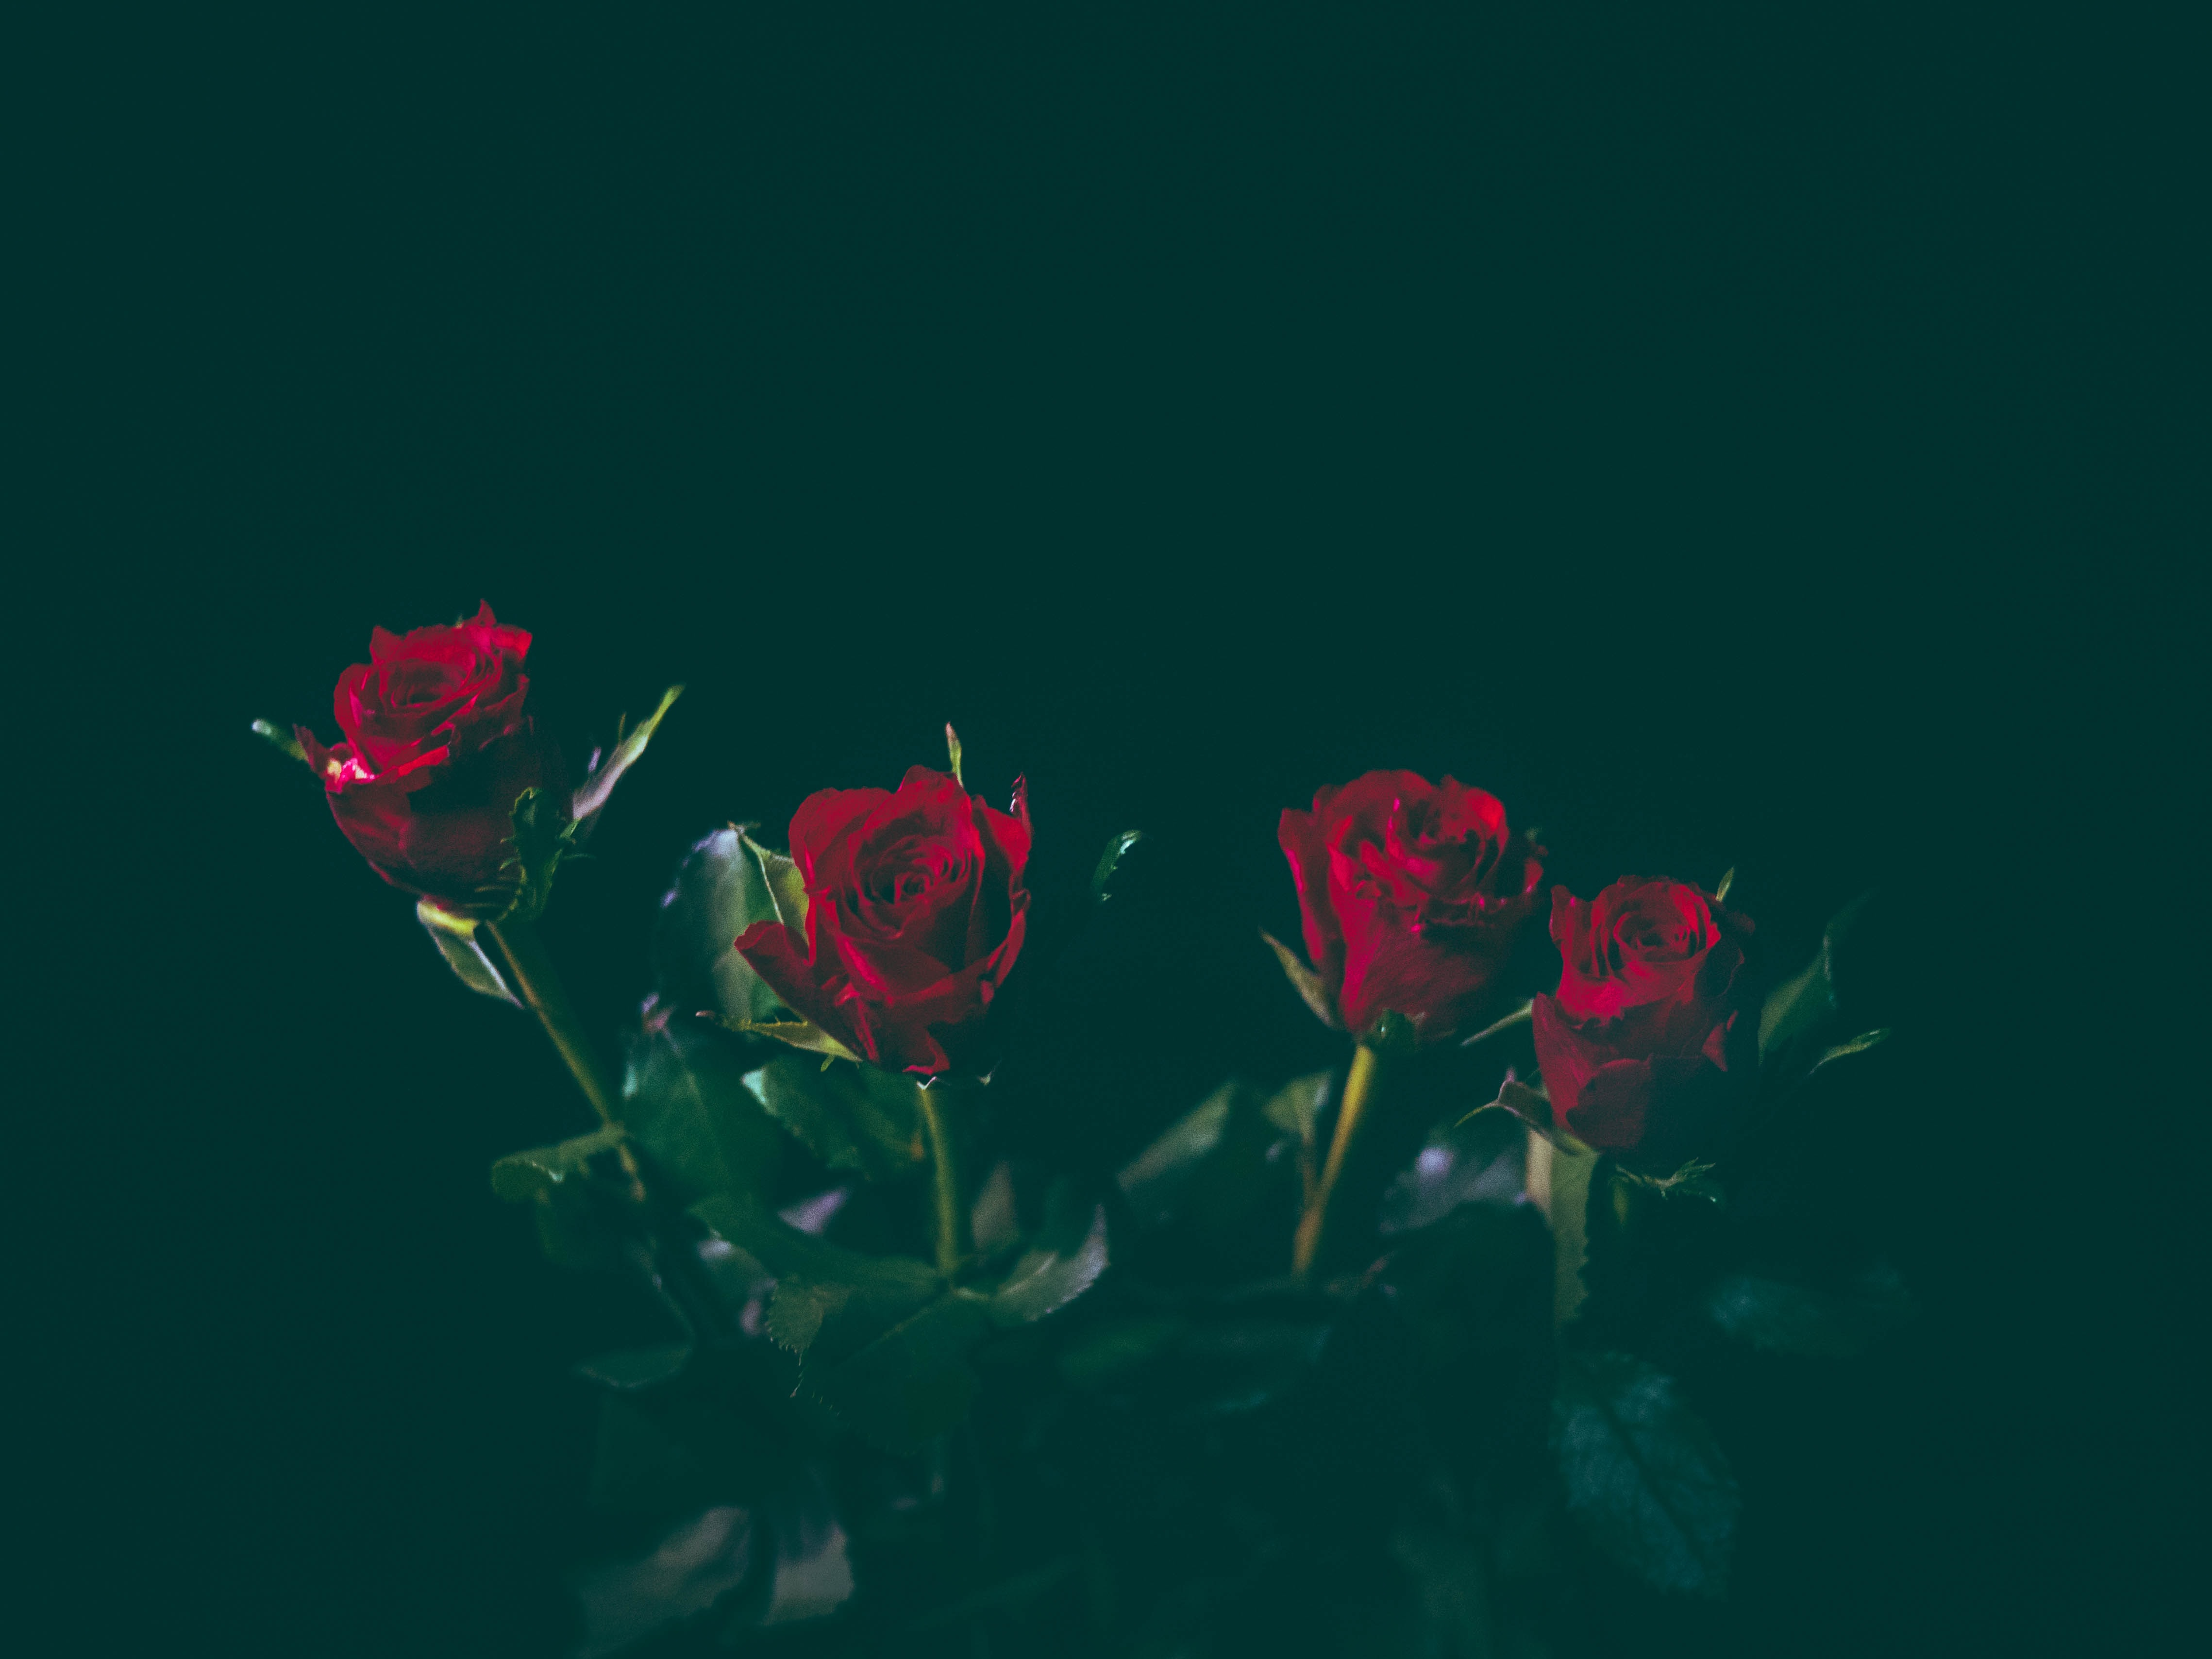 A bunch of 4 red roses set against a black background